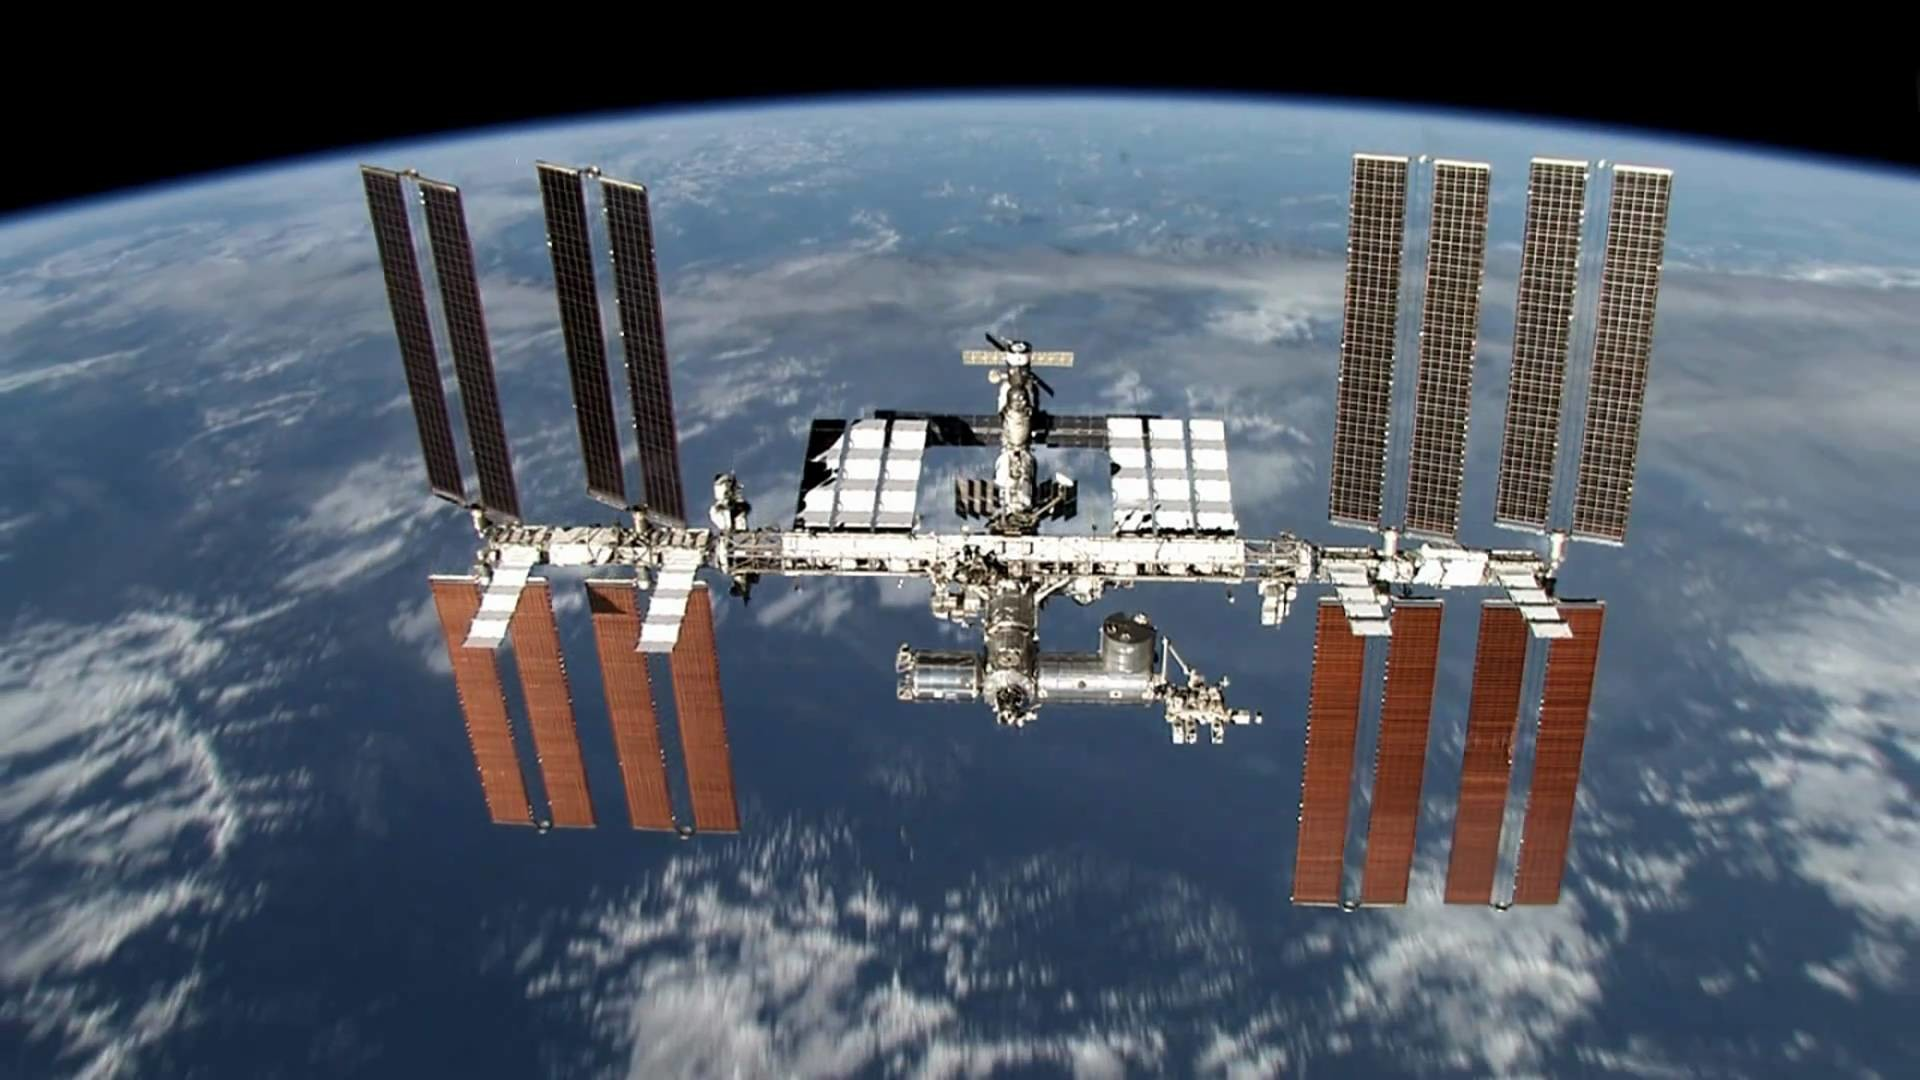 Futuristic space station hd wallpaper id21949   Chainimage    IMAGINARIUM   Pinterest   Space station, Hd wallpaper and Wallpaper